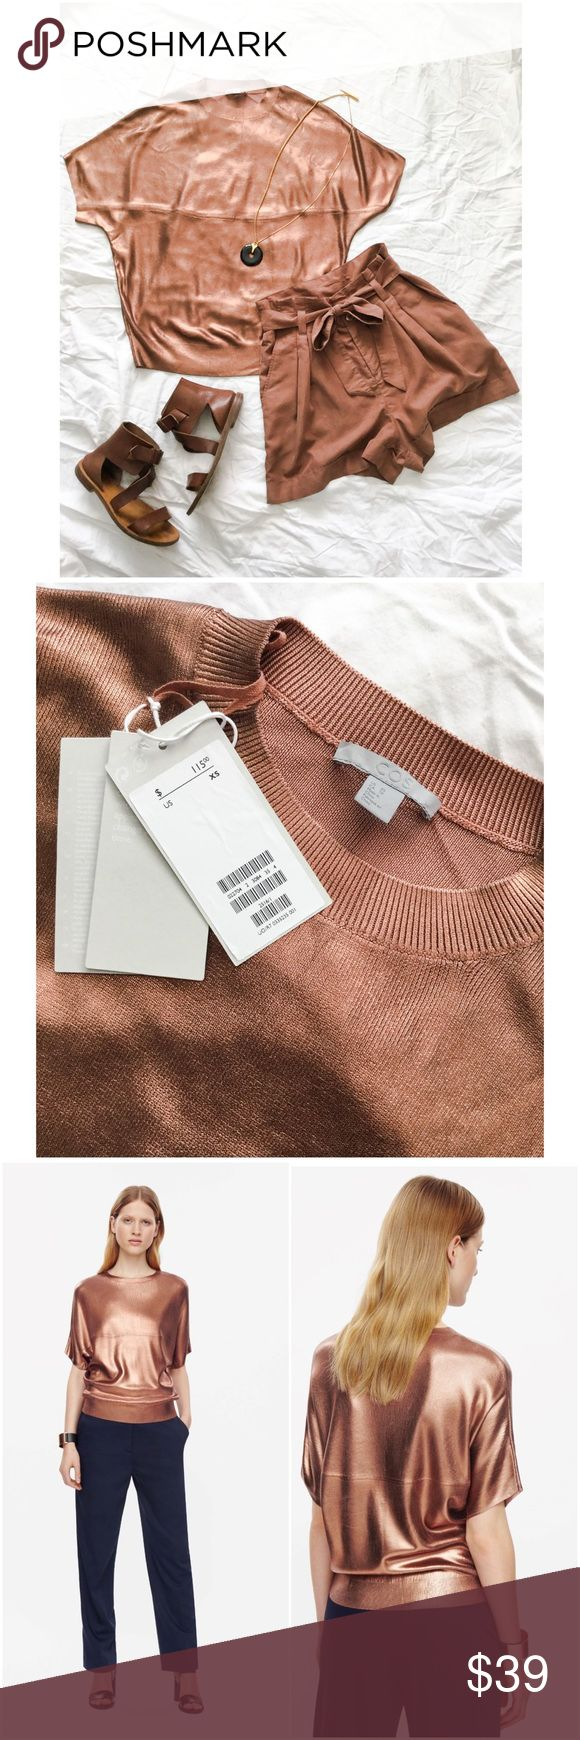 COS // Metallic rose gold top Loose fit top with a metallic coating on a knit. Short sleeve with raw cut finishes. Material is 100 % viscose. Never been worn with tags. COS Tops